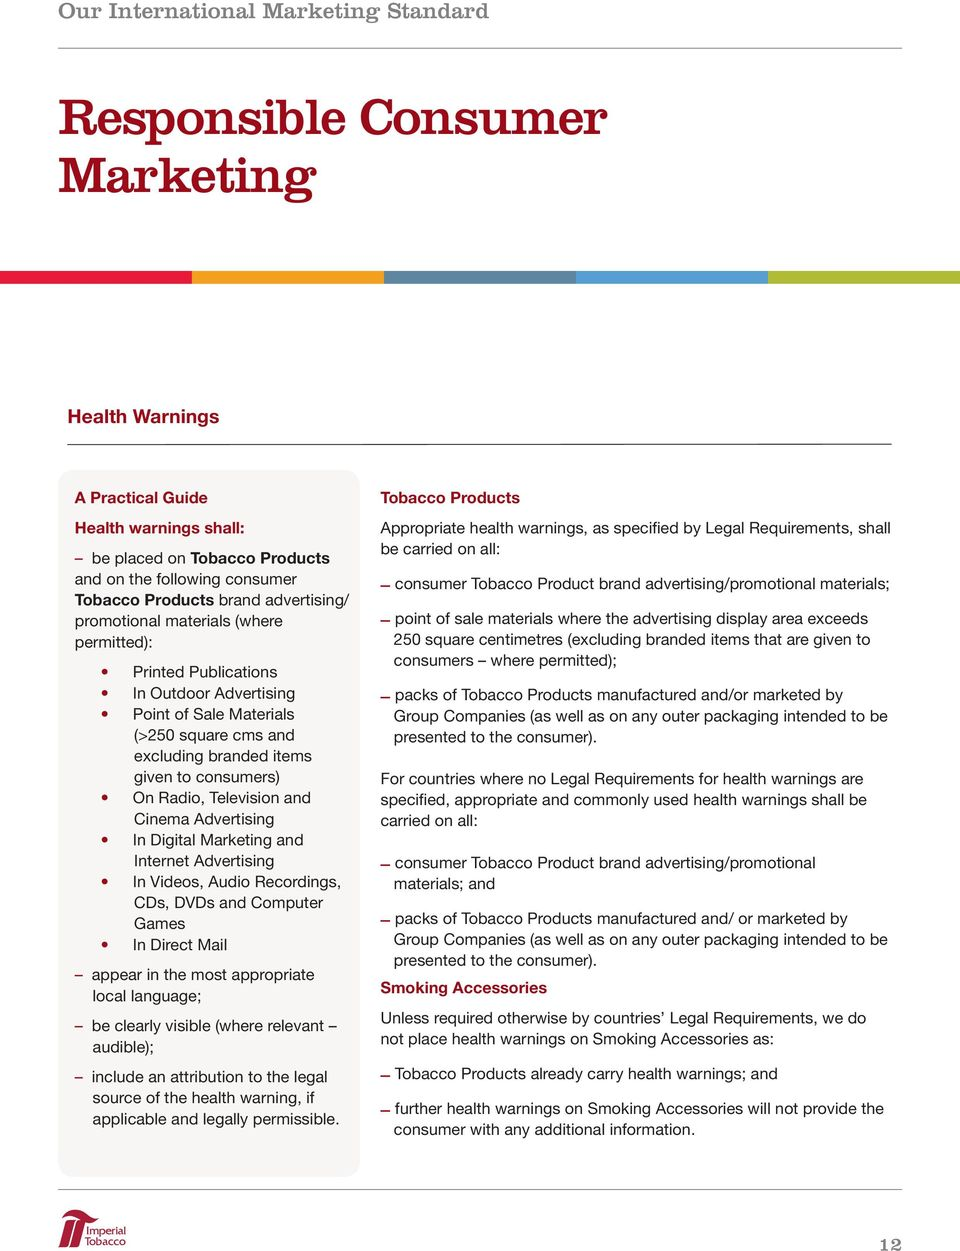 Advertising In Digital Marketing and Internet Advertising In Videos, Audio Recordings, CDs, DVDs and Computer Games In Direct Mail appear in the most appropriate local language; be clearly visible